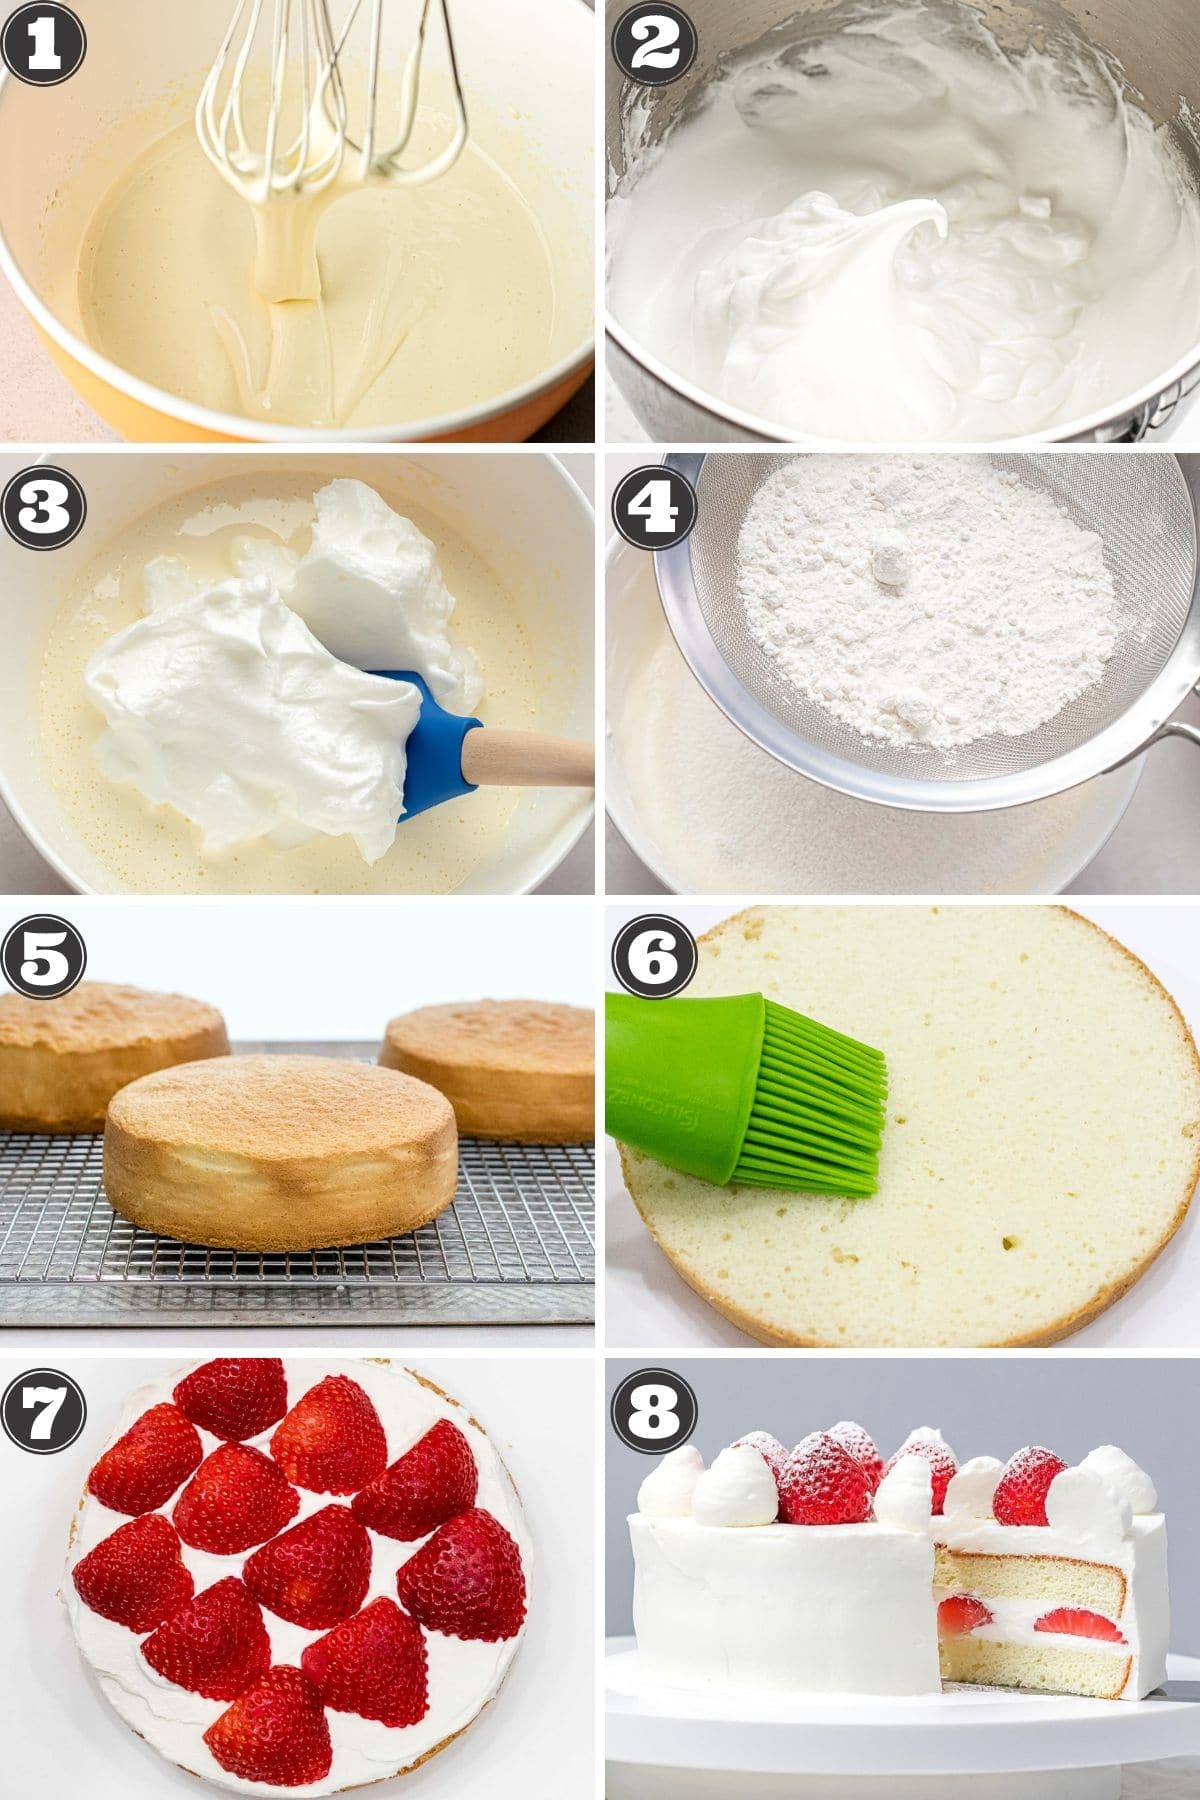 numbered step by step photos for how to make Japanese strawberry shortcake